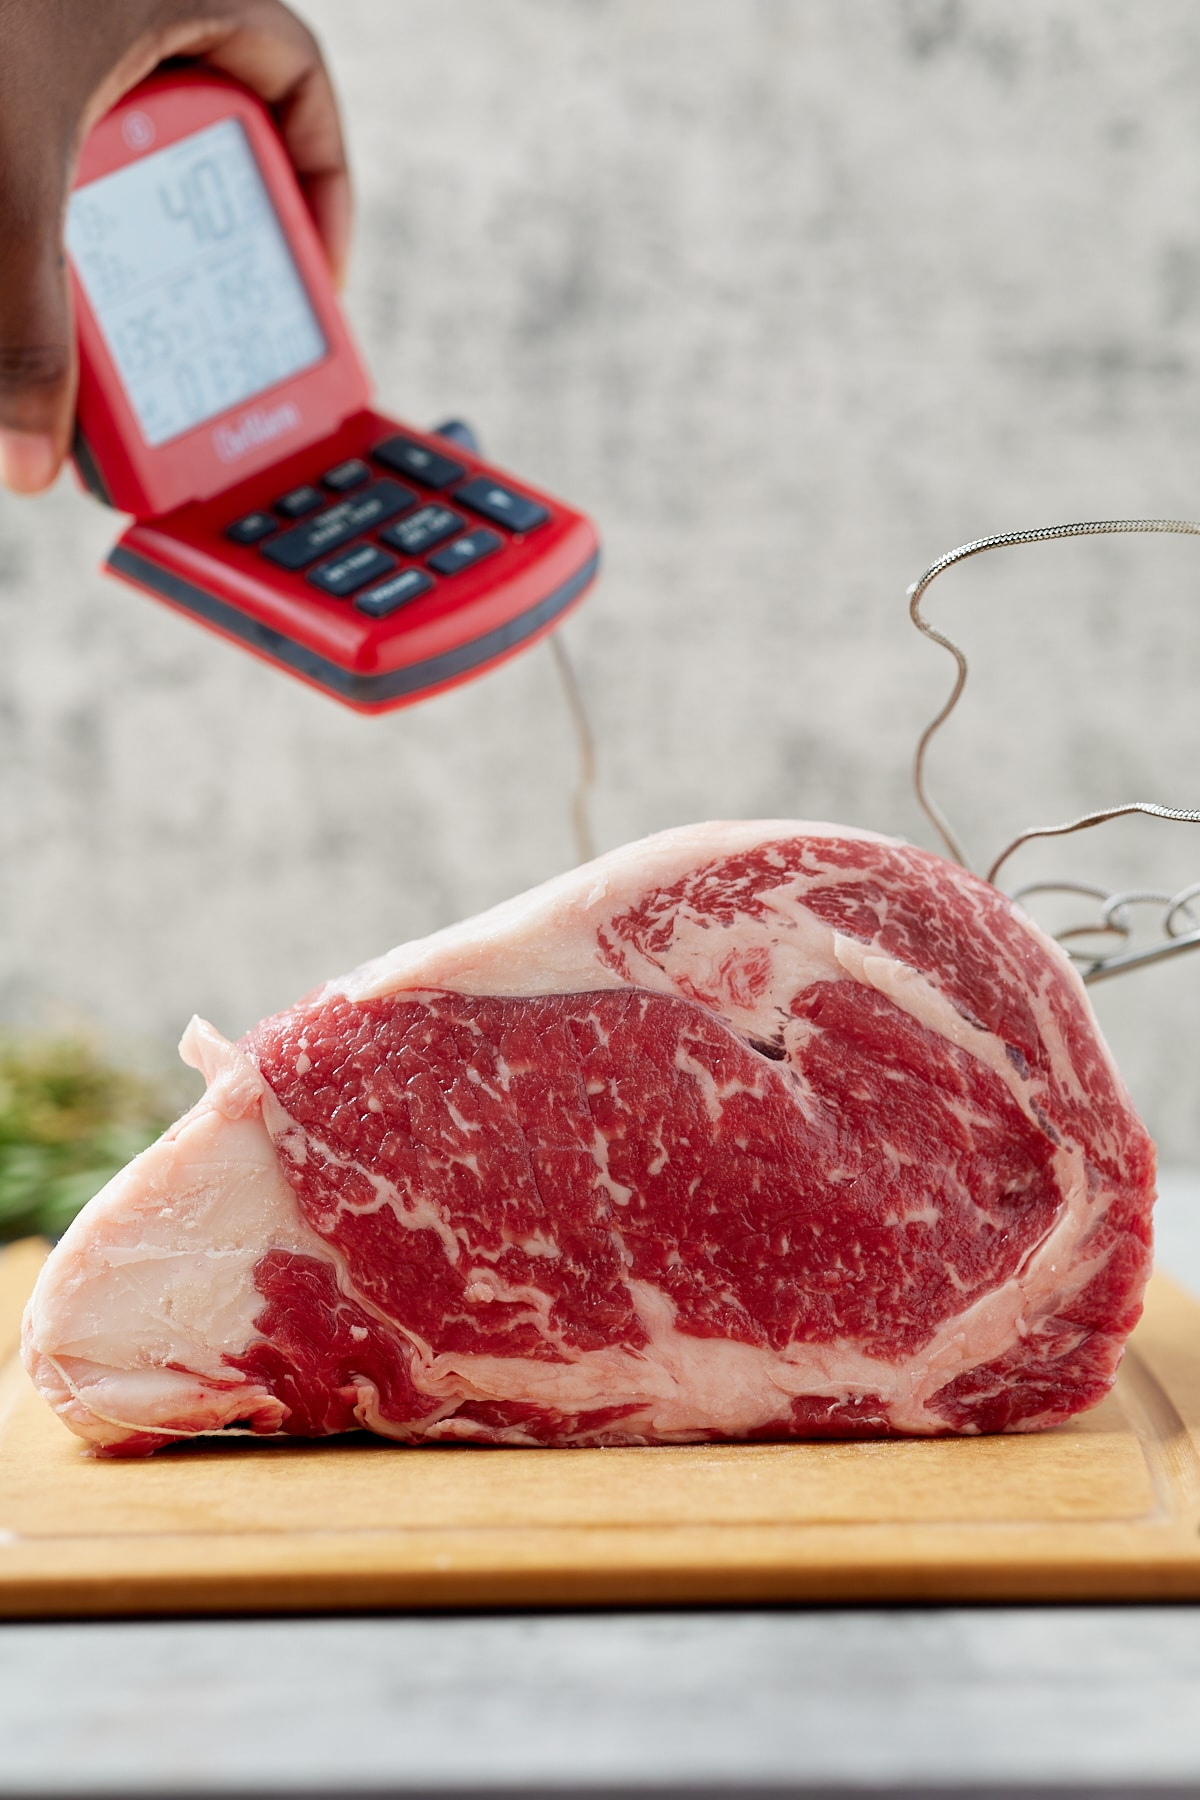 A raw boneless cut of beef with an instant read thermometer.